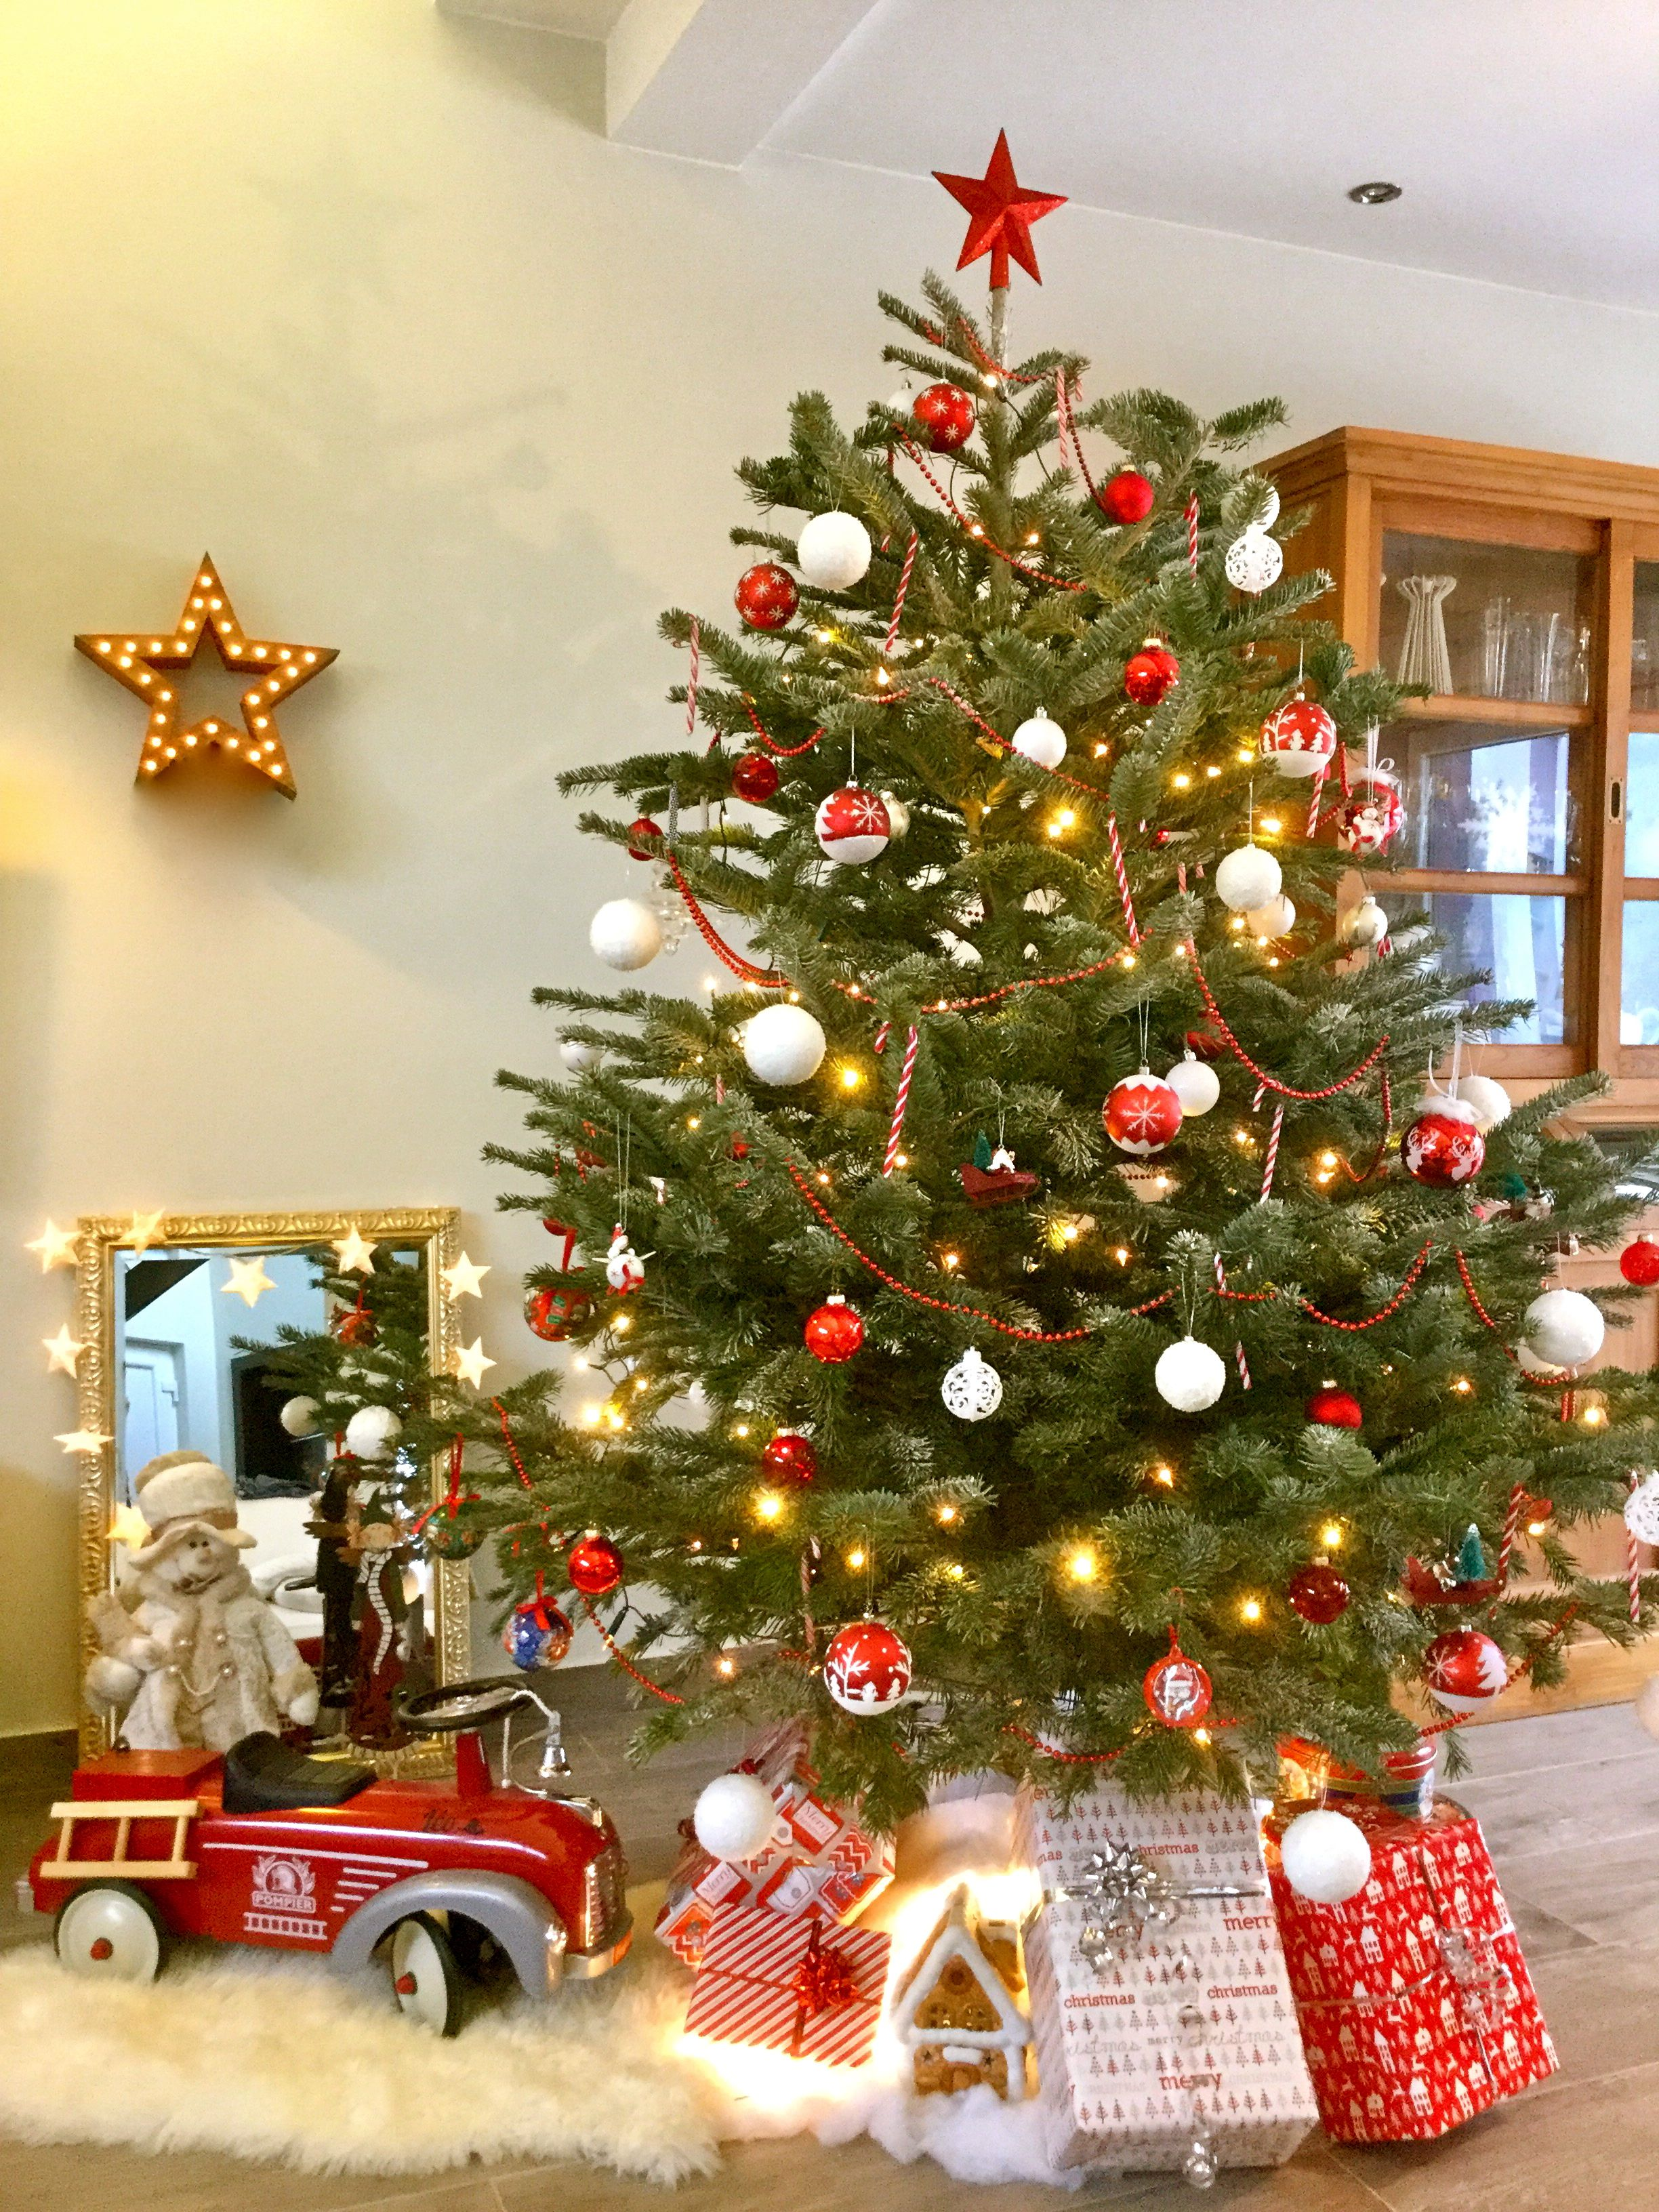 100 Remarquable Suggestions Sapin De Noel Decoration Traditionnelle